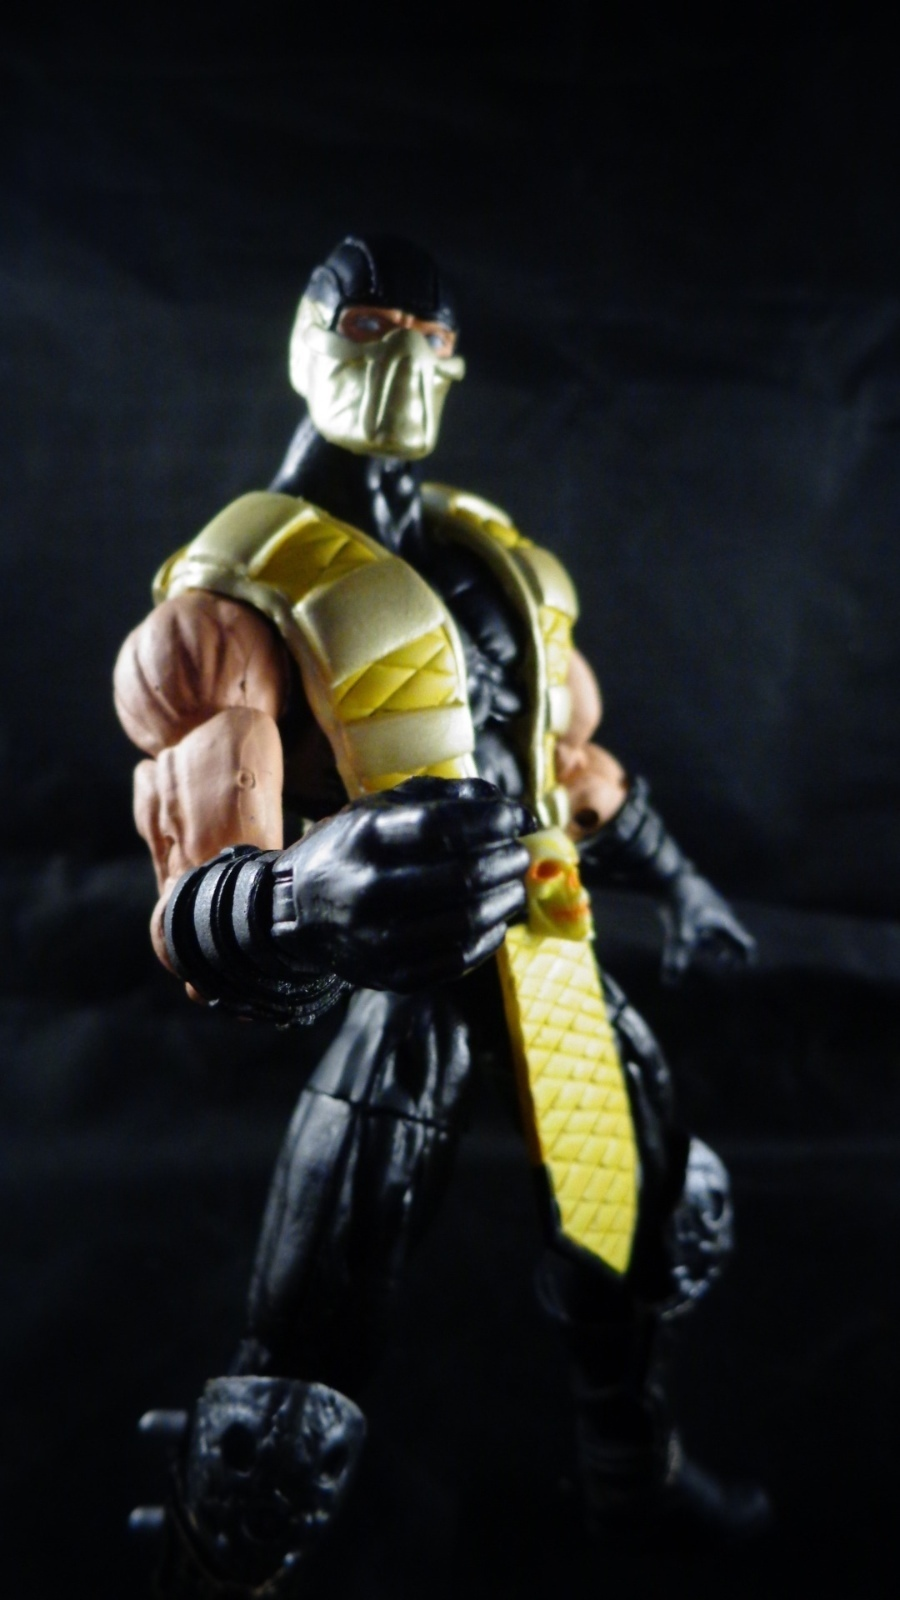 Mortal Kombat Scorpion Spear For Sale